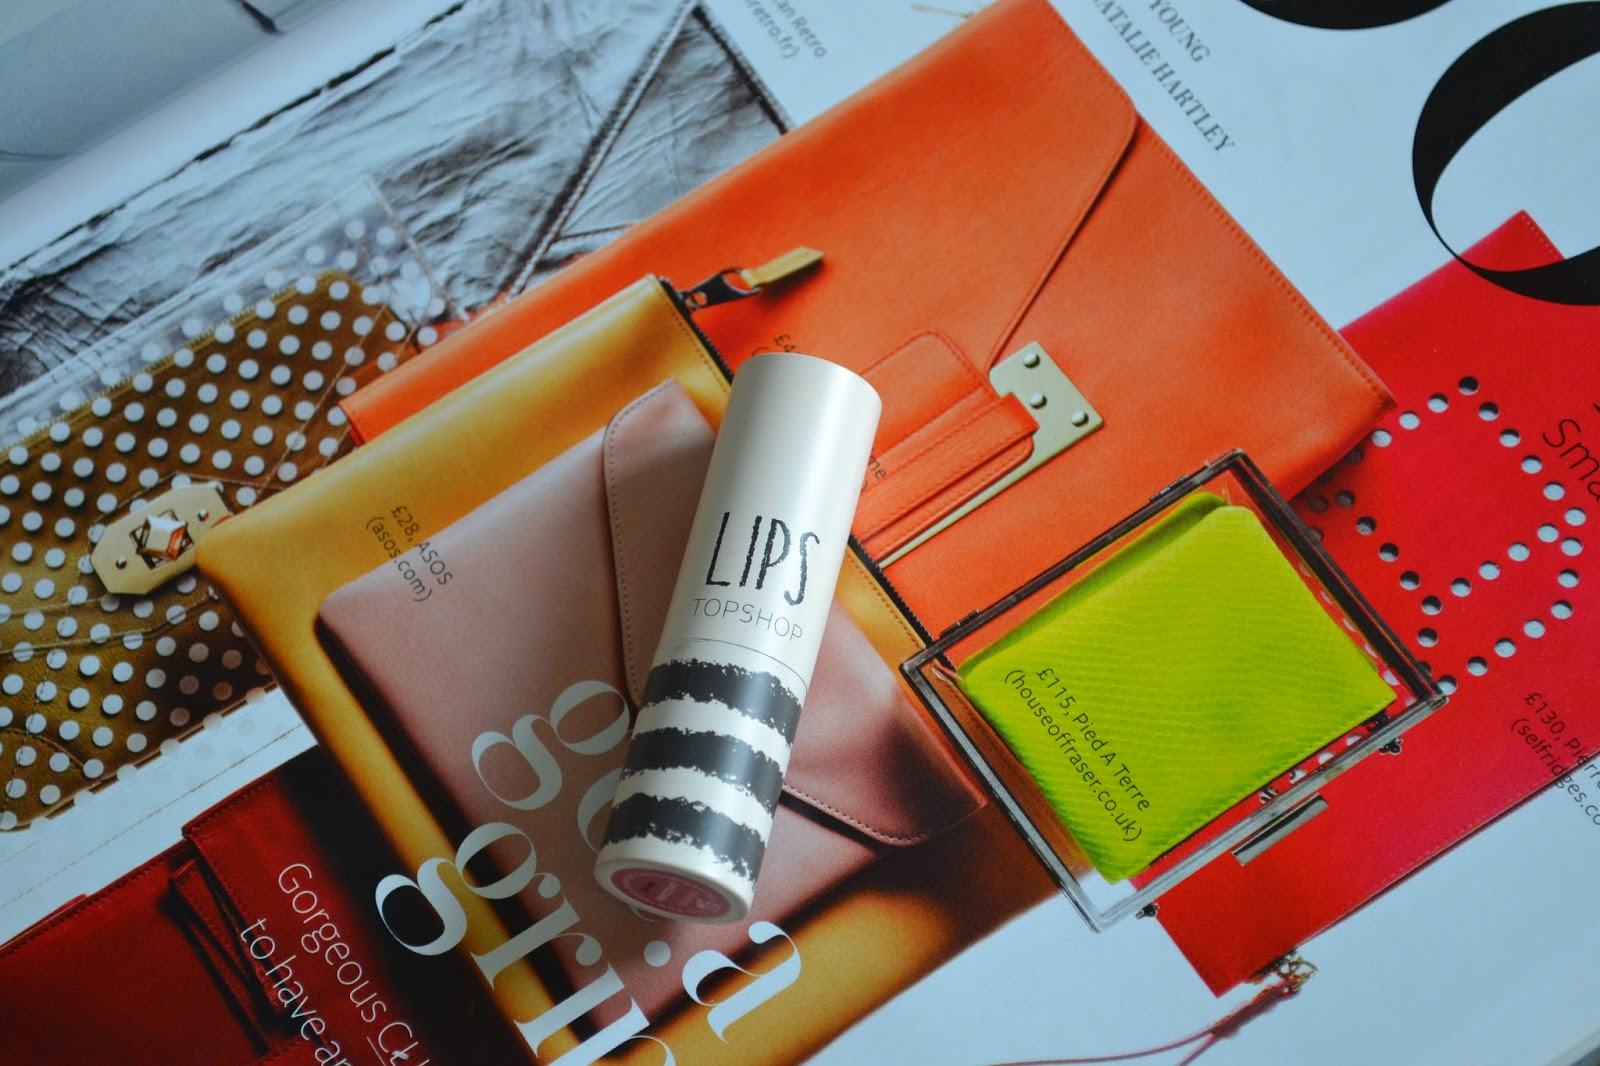 Topshop Lipstick in Innocent Review + Swatch - Aspiring Londoner